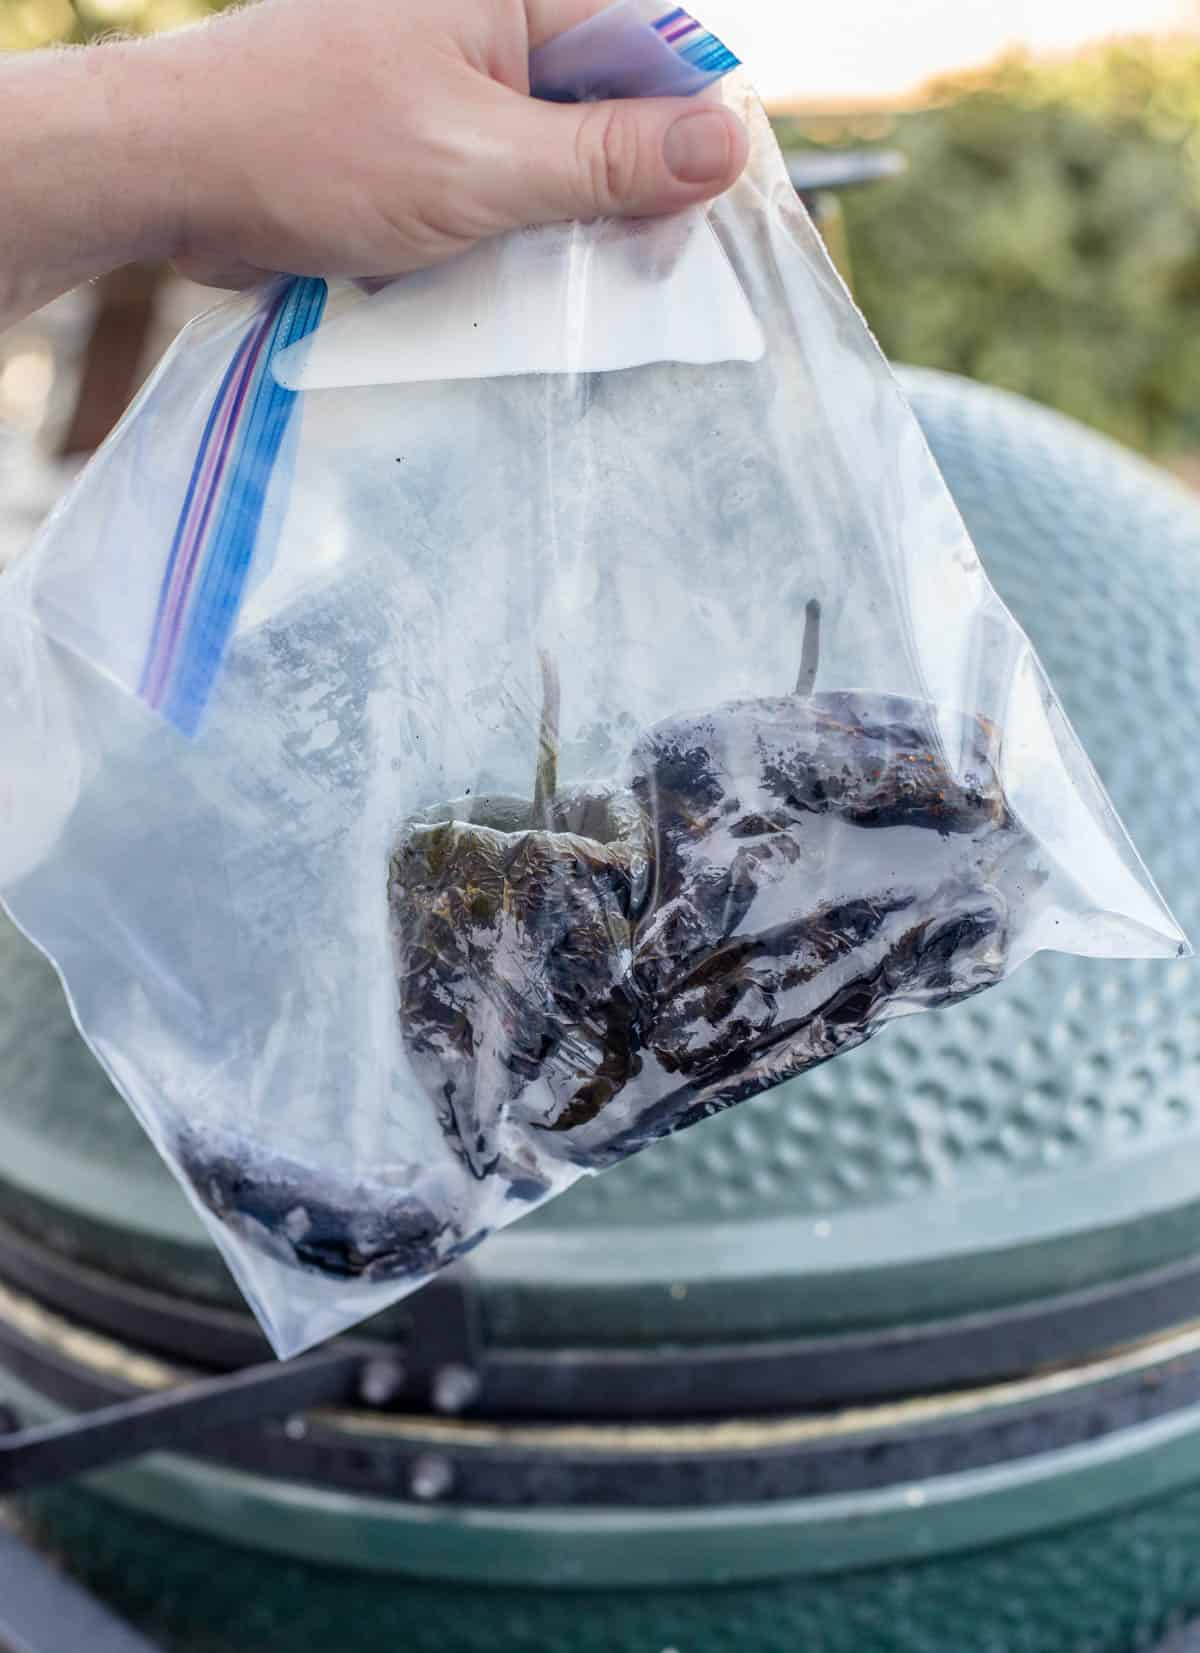 Roasted poblano peppers in a plastic baggie before peeling skin.